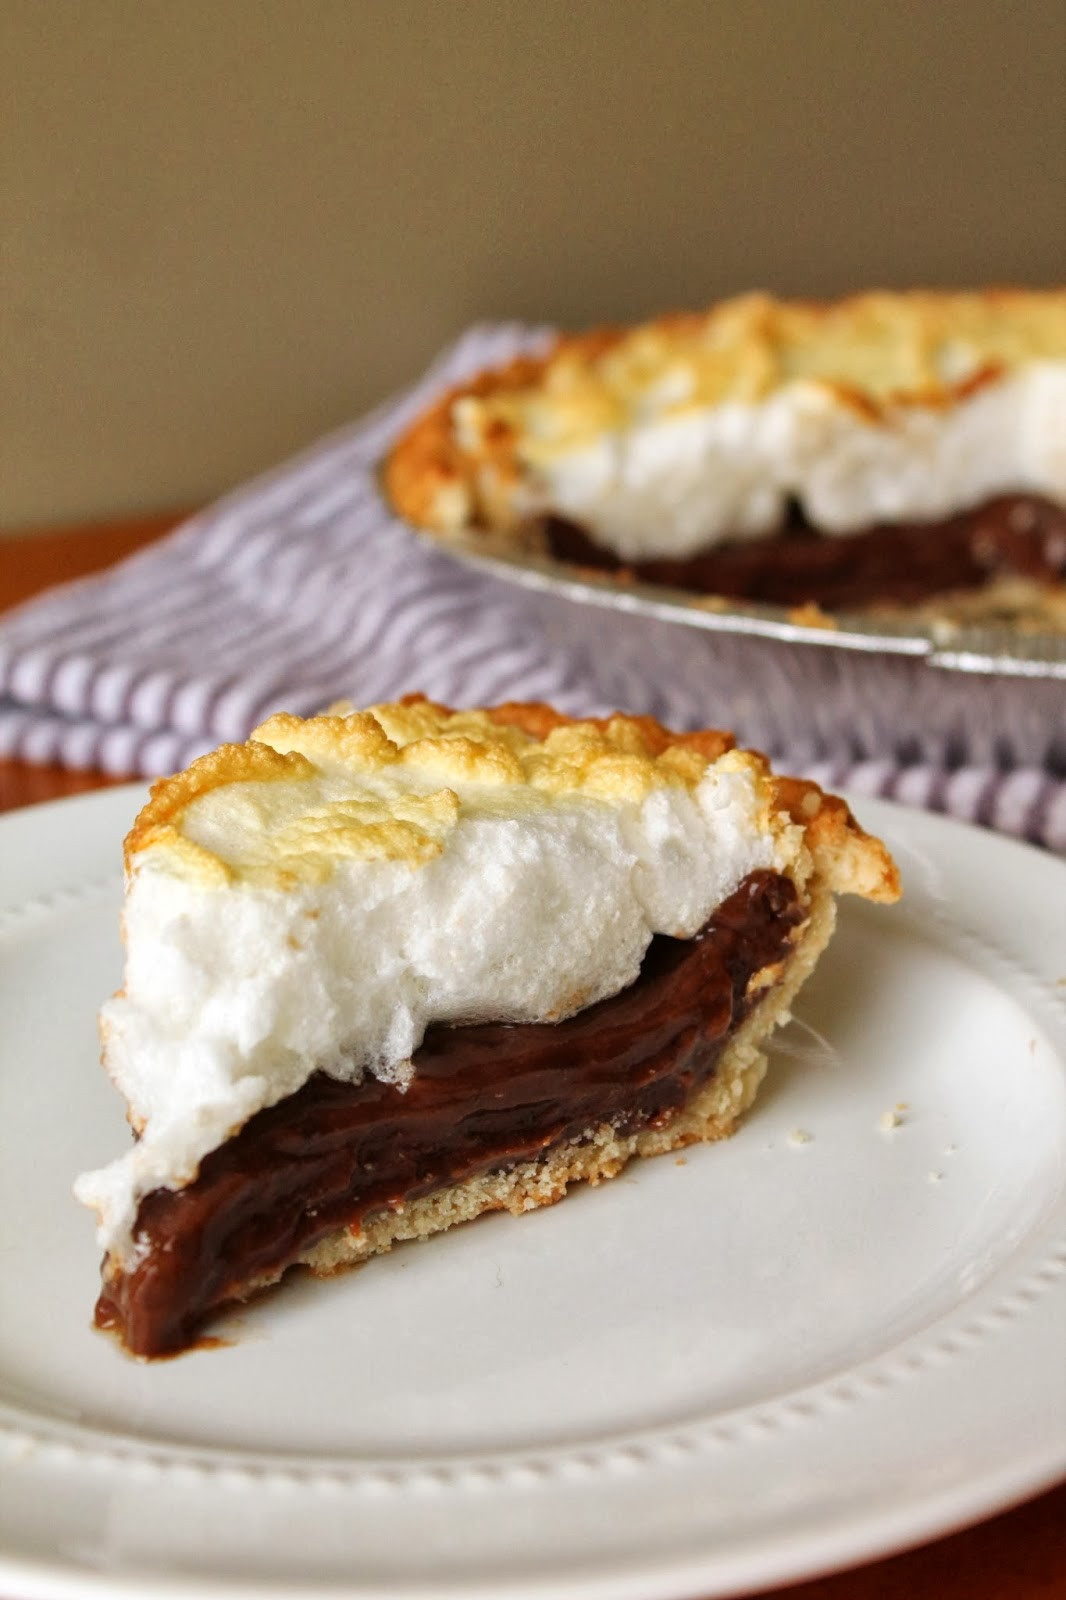 Old Fashioned Chocolate Pie  Old Fashion Chocolate Pie